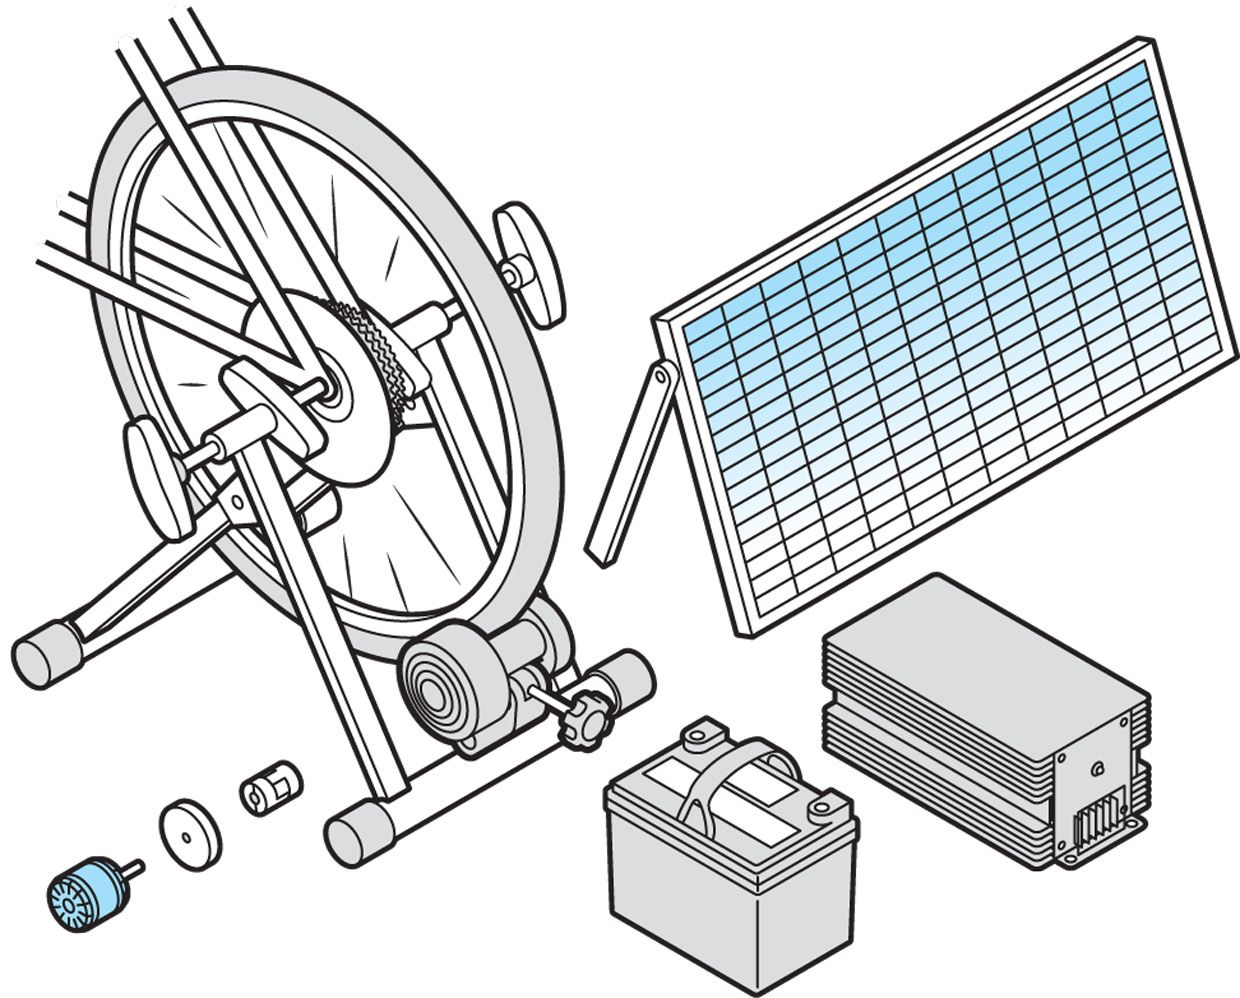 The components needed to build a pedal-powered power backup system.